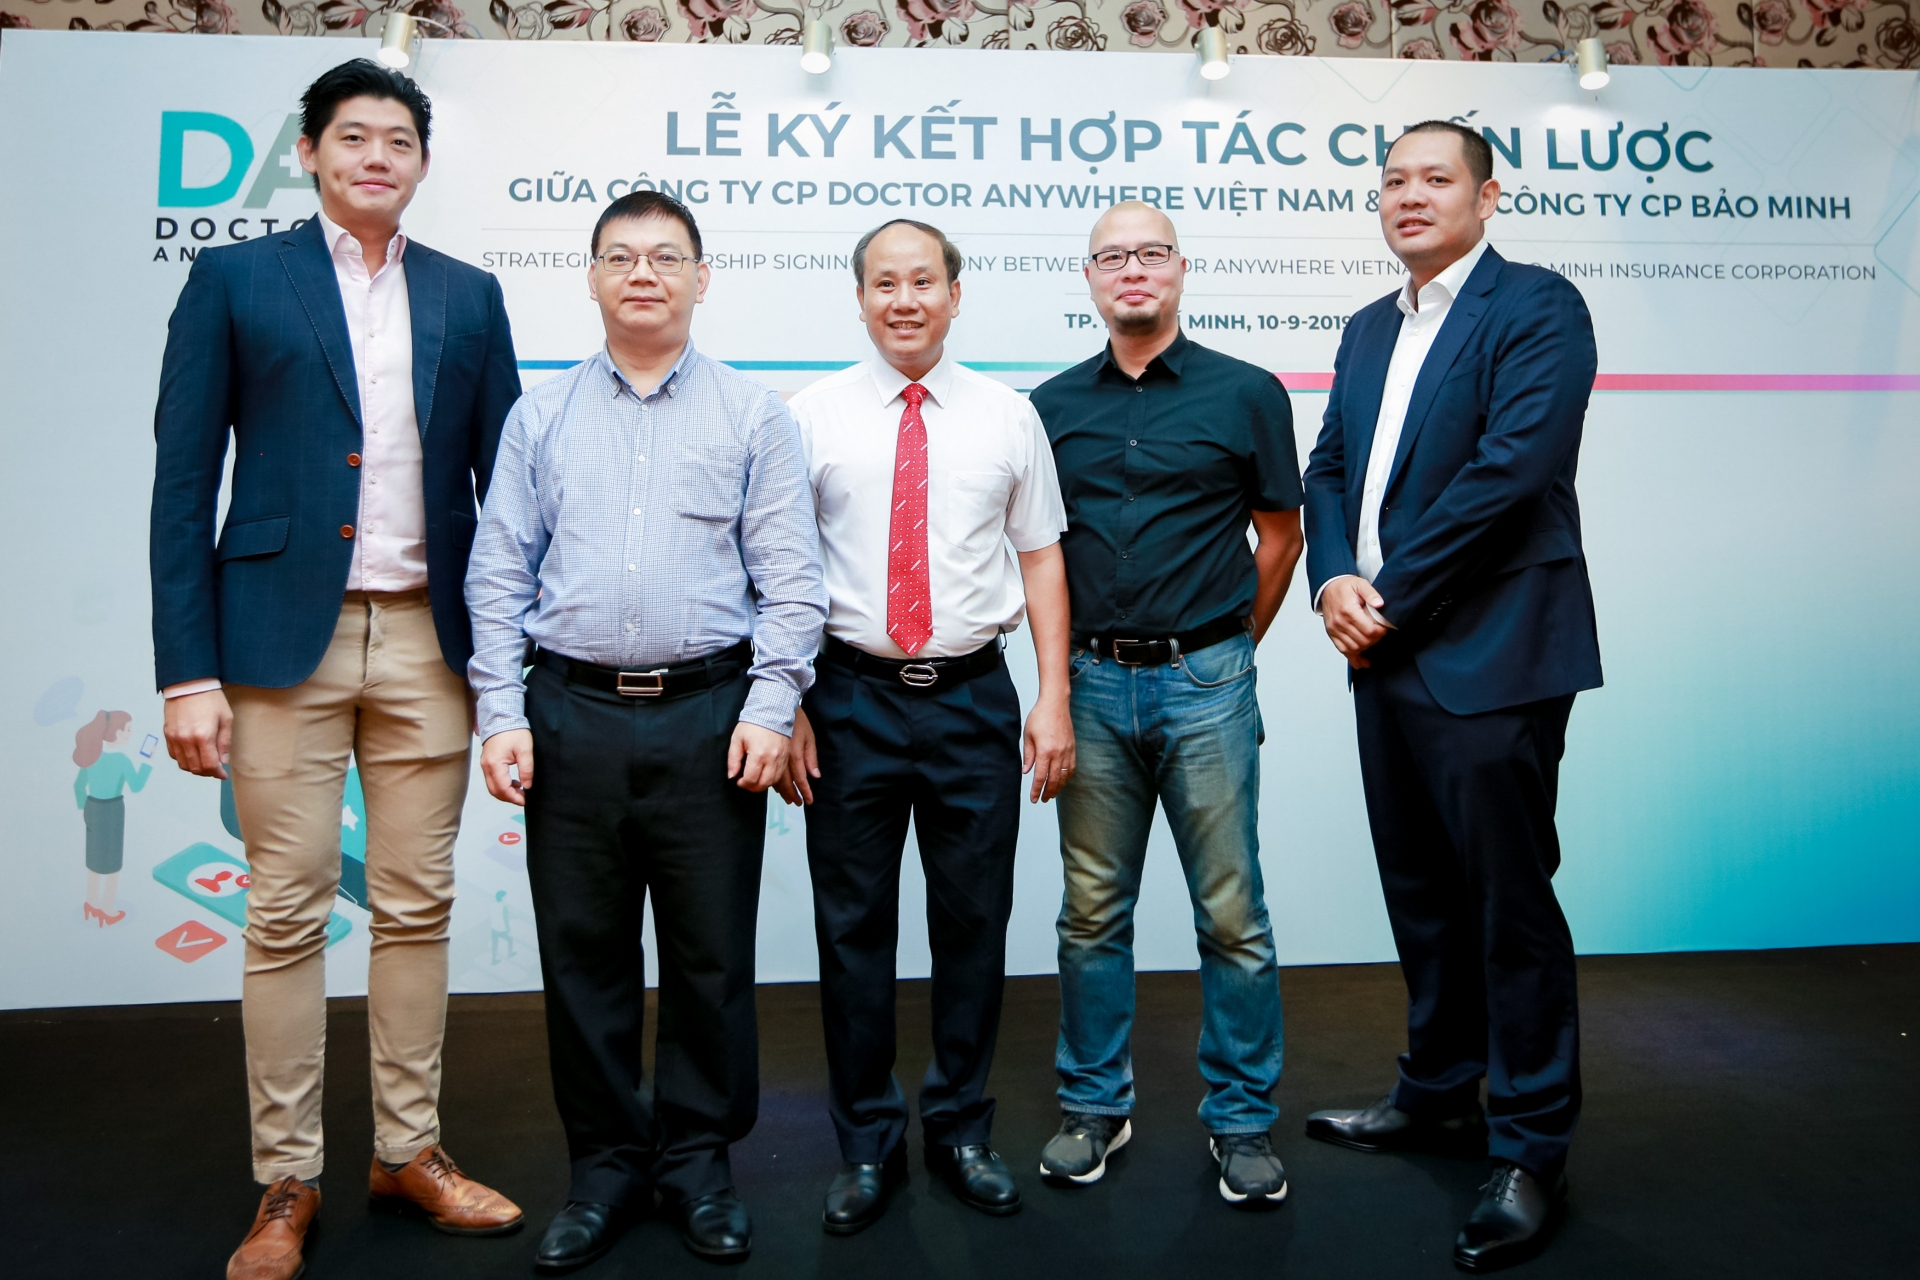 Doctor Anywhere ties up with Bao Minh Insurance to digitise healthcare